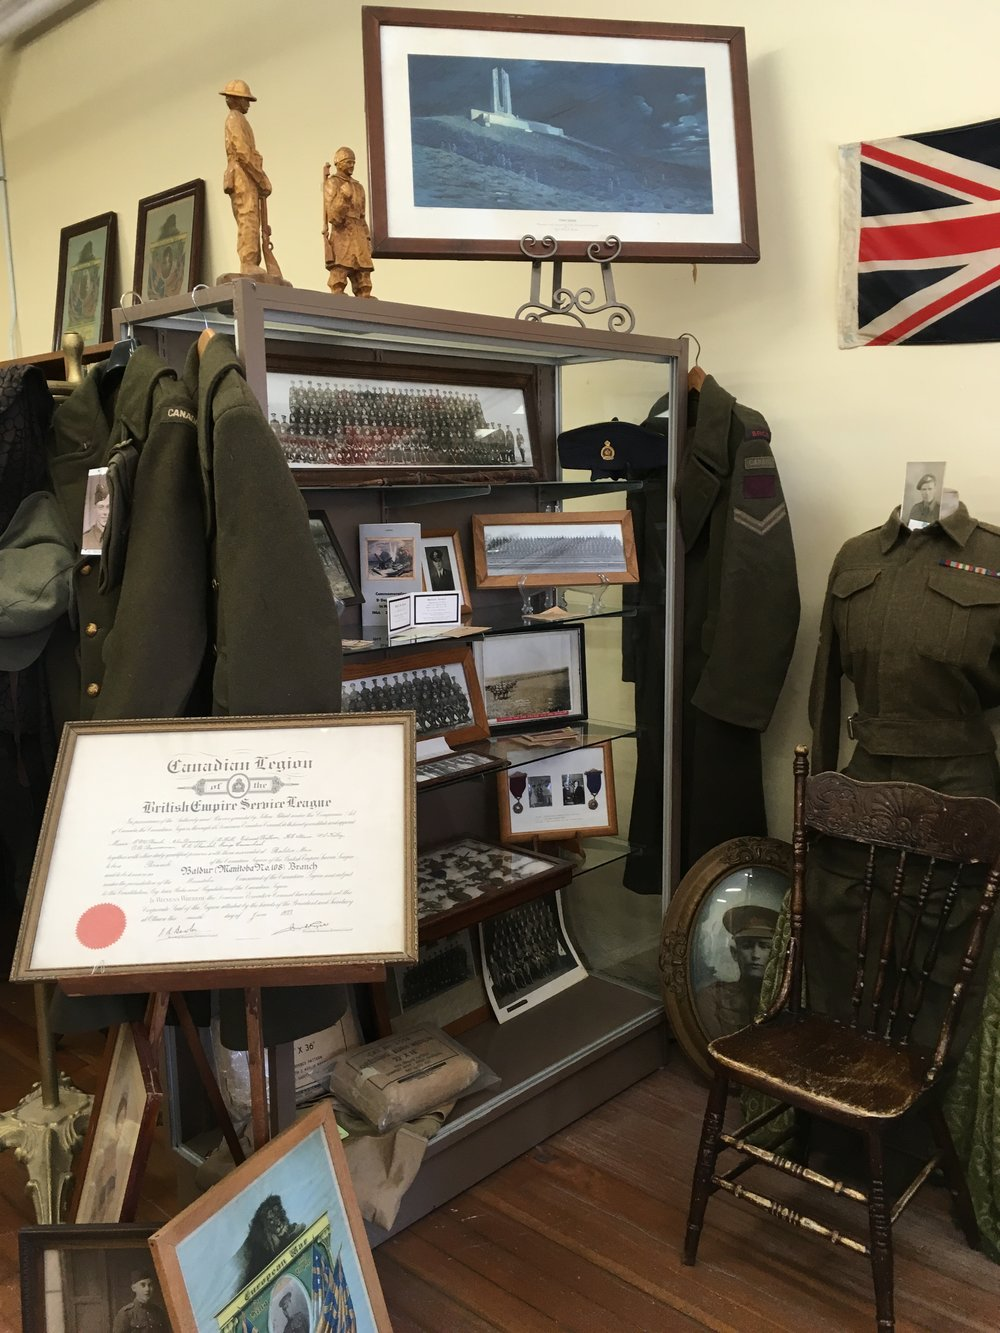 A wonderful display of artifacts and photo's honoring our Veteran's